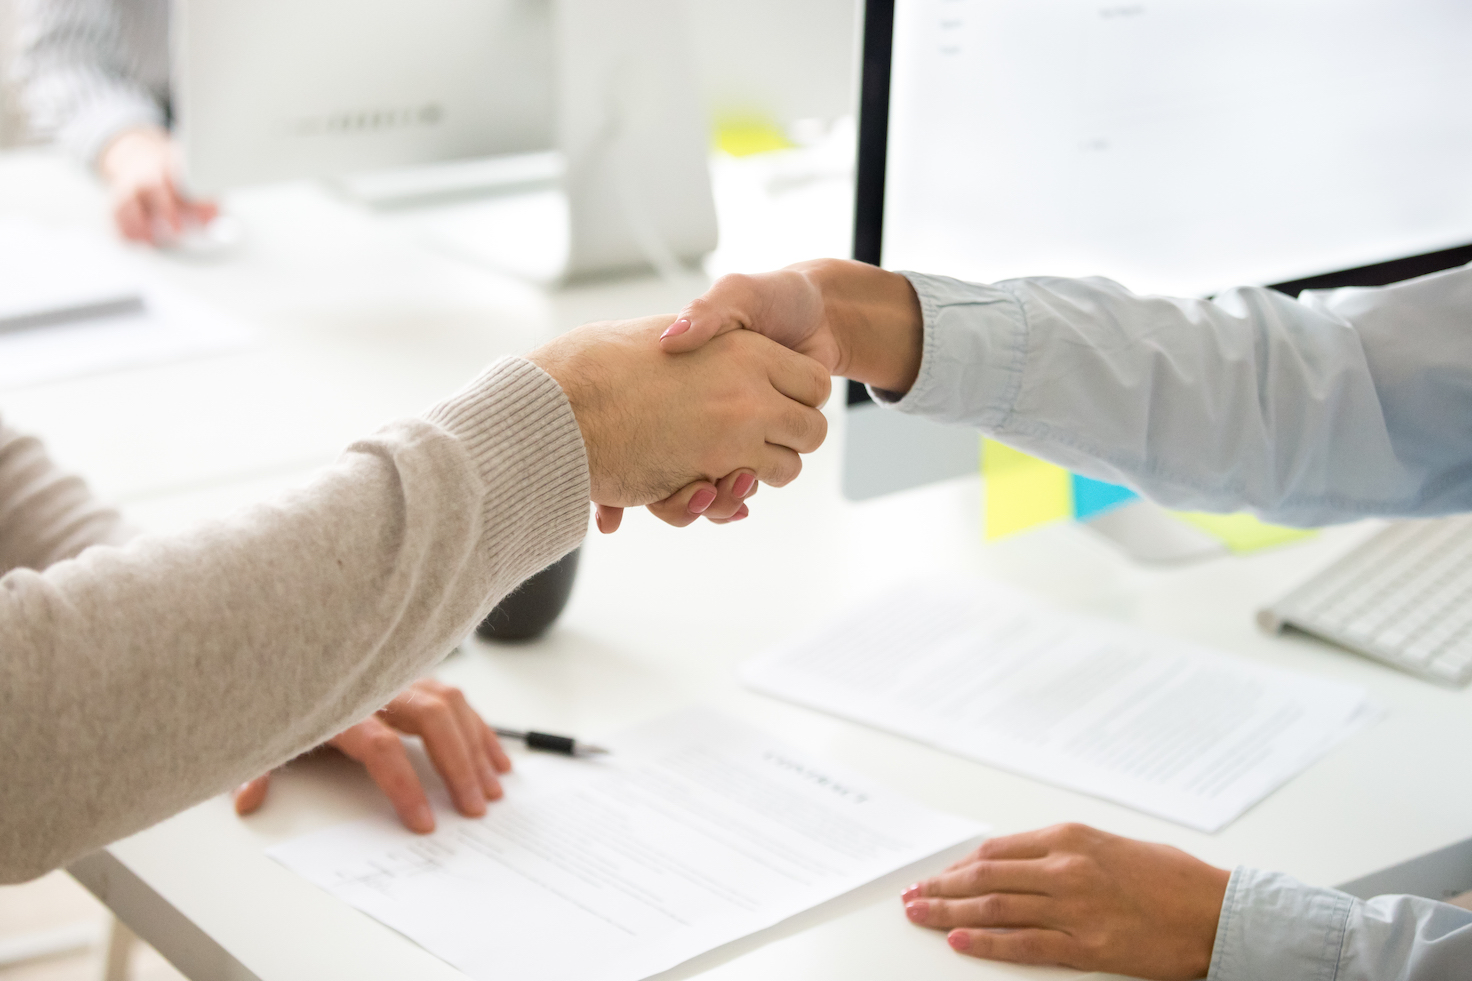 Handshake of man and woman after signing business contract, businessman and businesswoman shaking hands making employment agreement or hiring, buying insurance or becoming partners, close up view